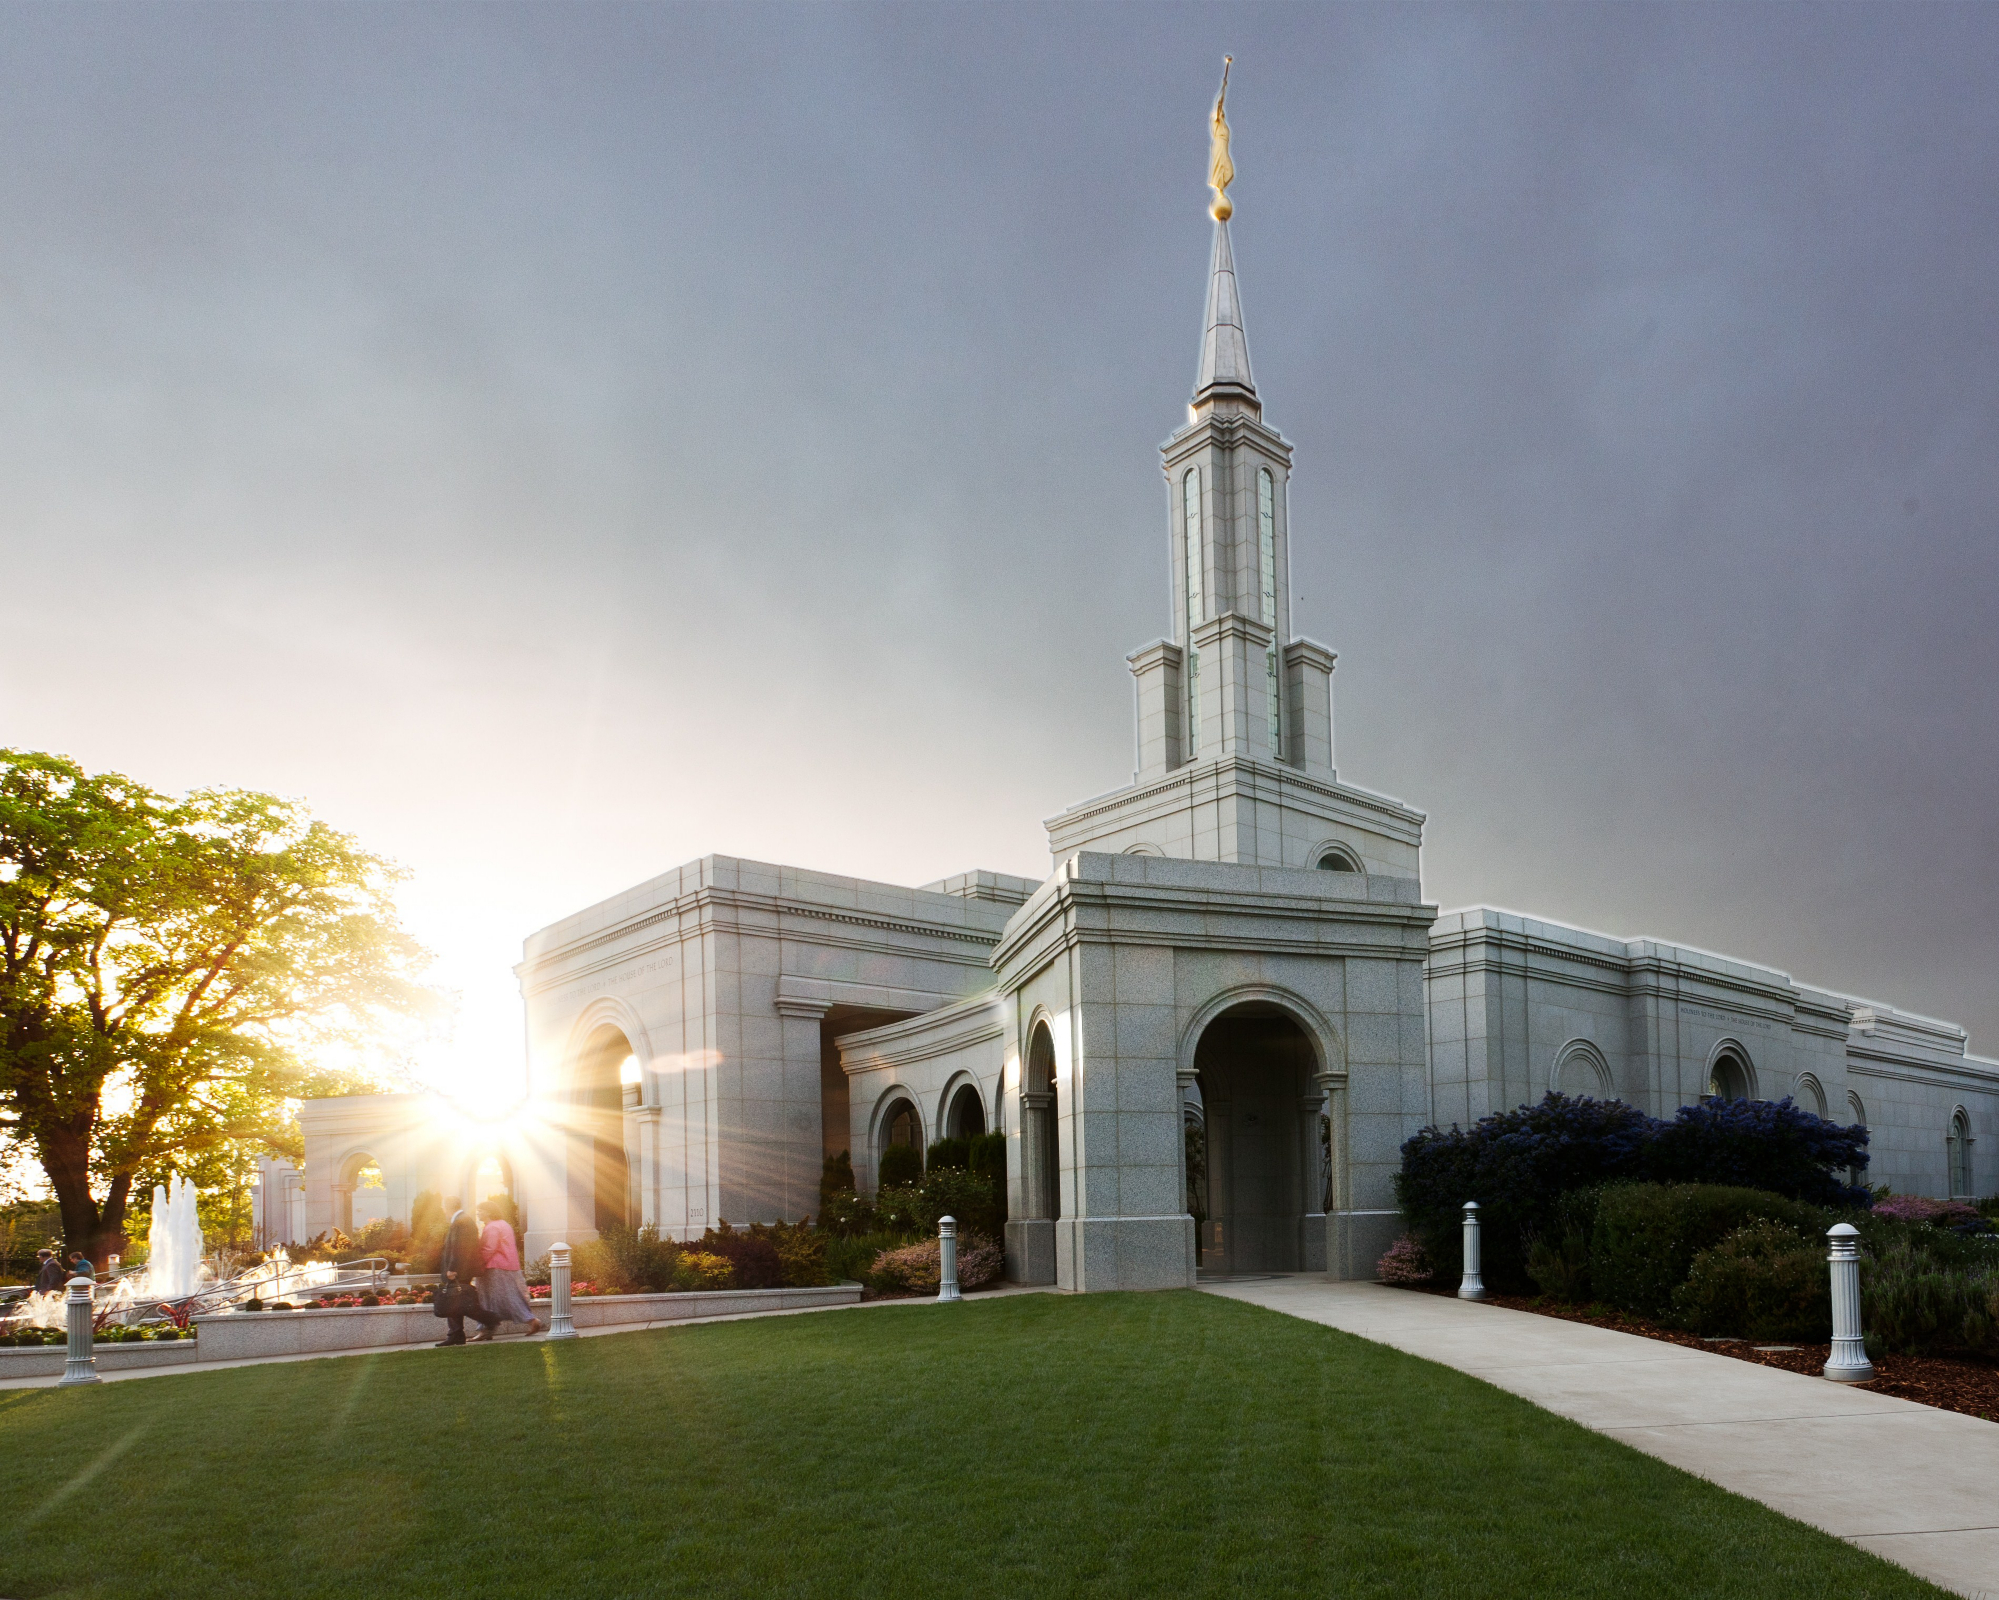 Sacramento california temple at sunset - Lds temple wallpaper ...